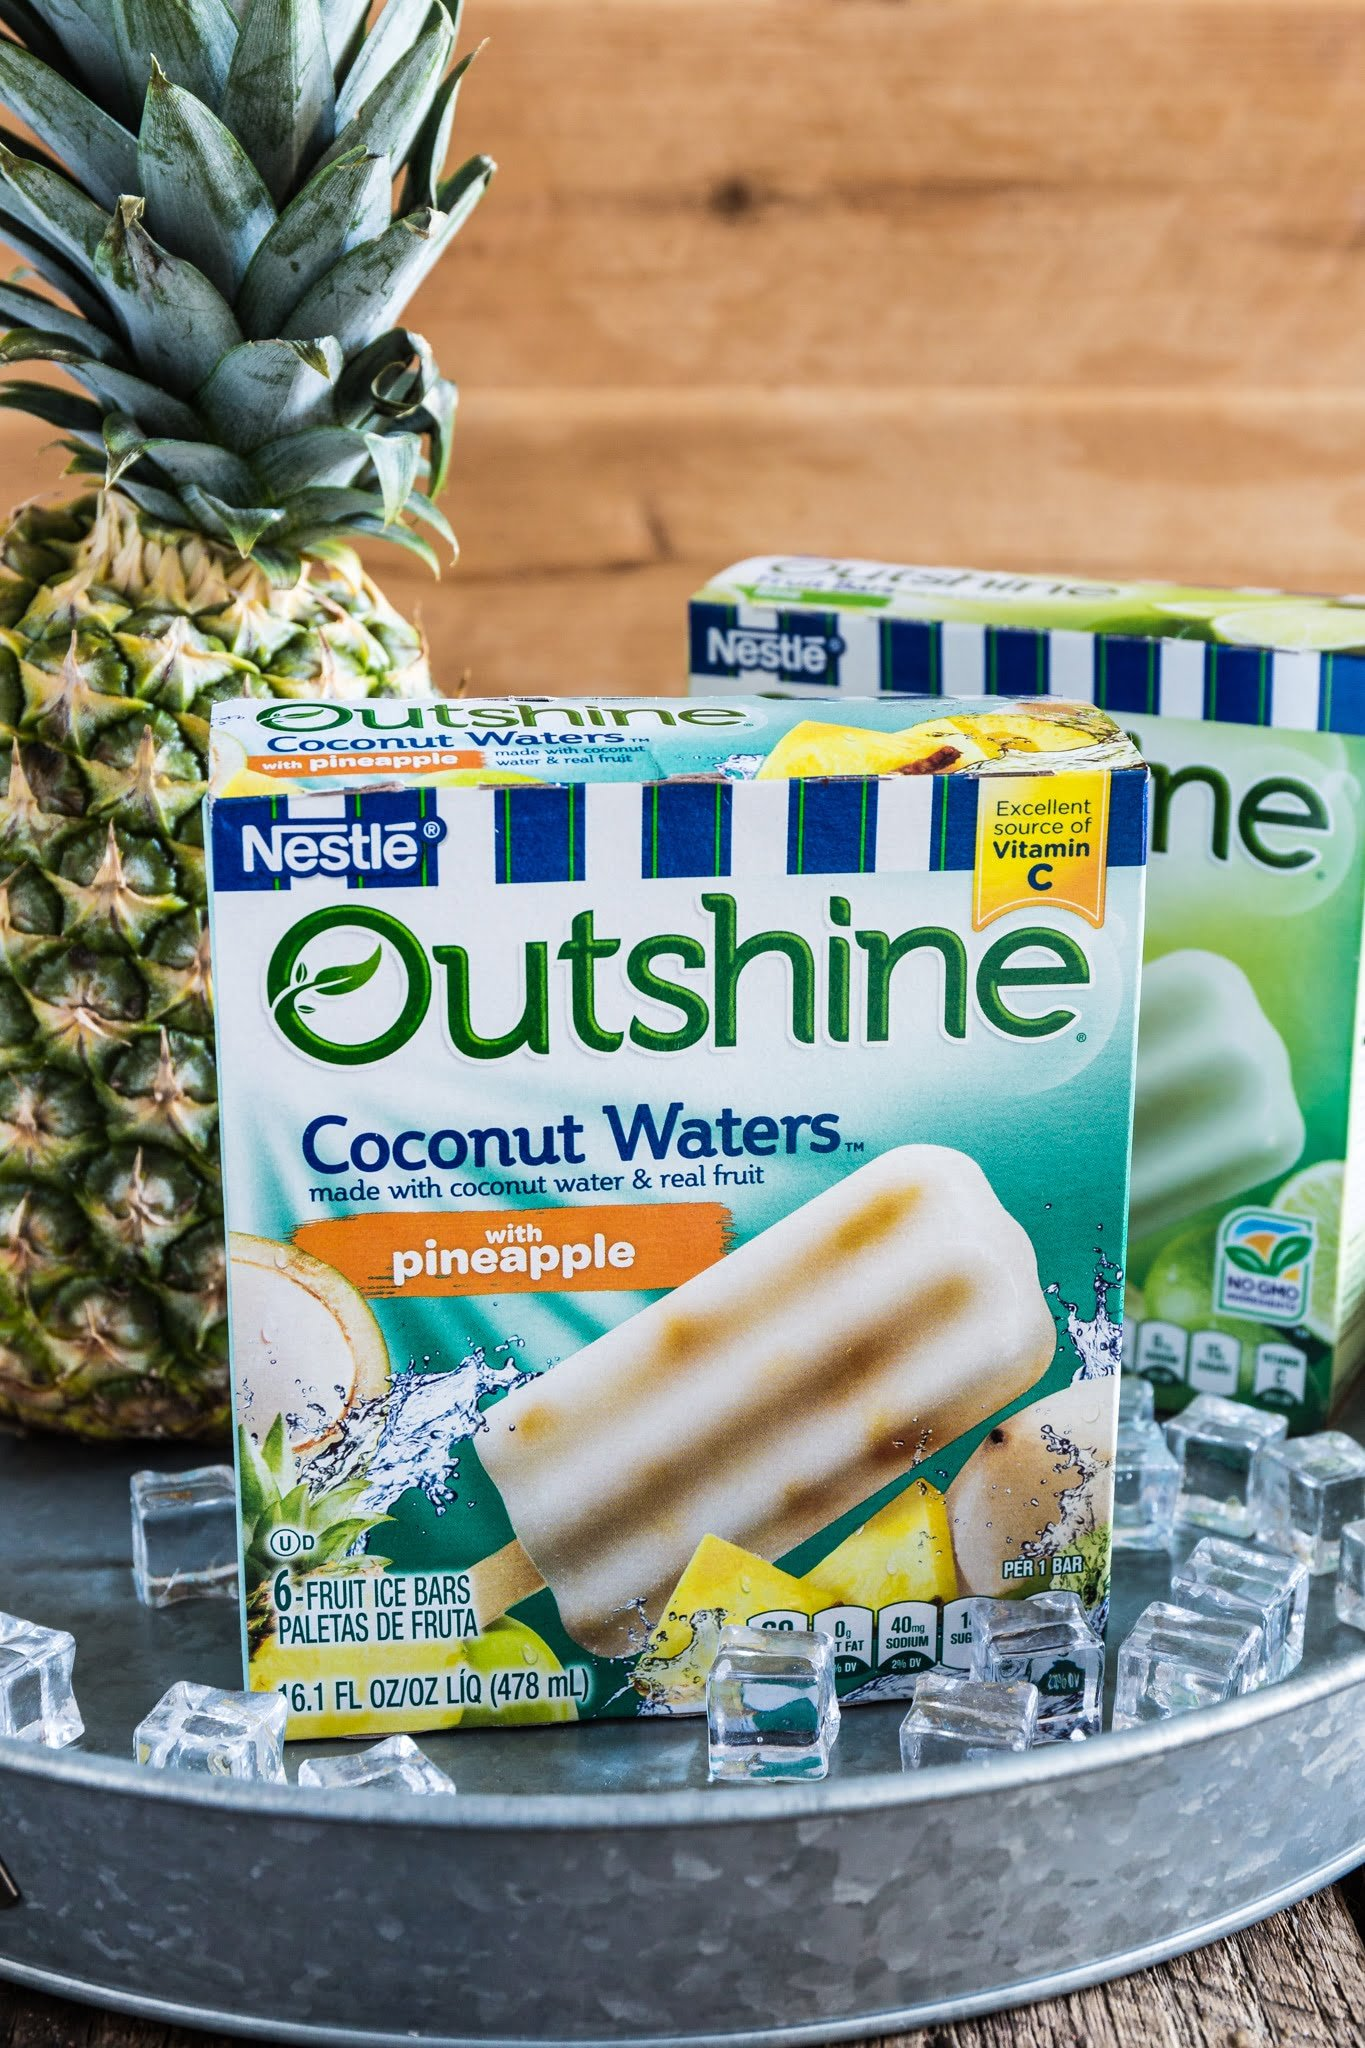 Pineapple Mint Fruit Bar Caipirinha | www.oliviascuisine.com | Summer is almost here and this Pineapple Mint Fruit Bar Caipirinha will be the hit of your parties! Sweet, refreshing and very easy to make. Who doesn't love that? (Recipe by @oliviascuisine.)